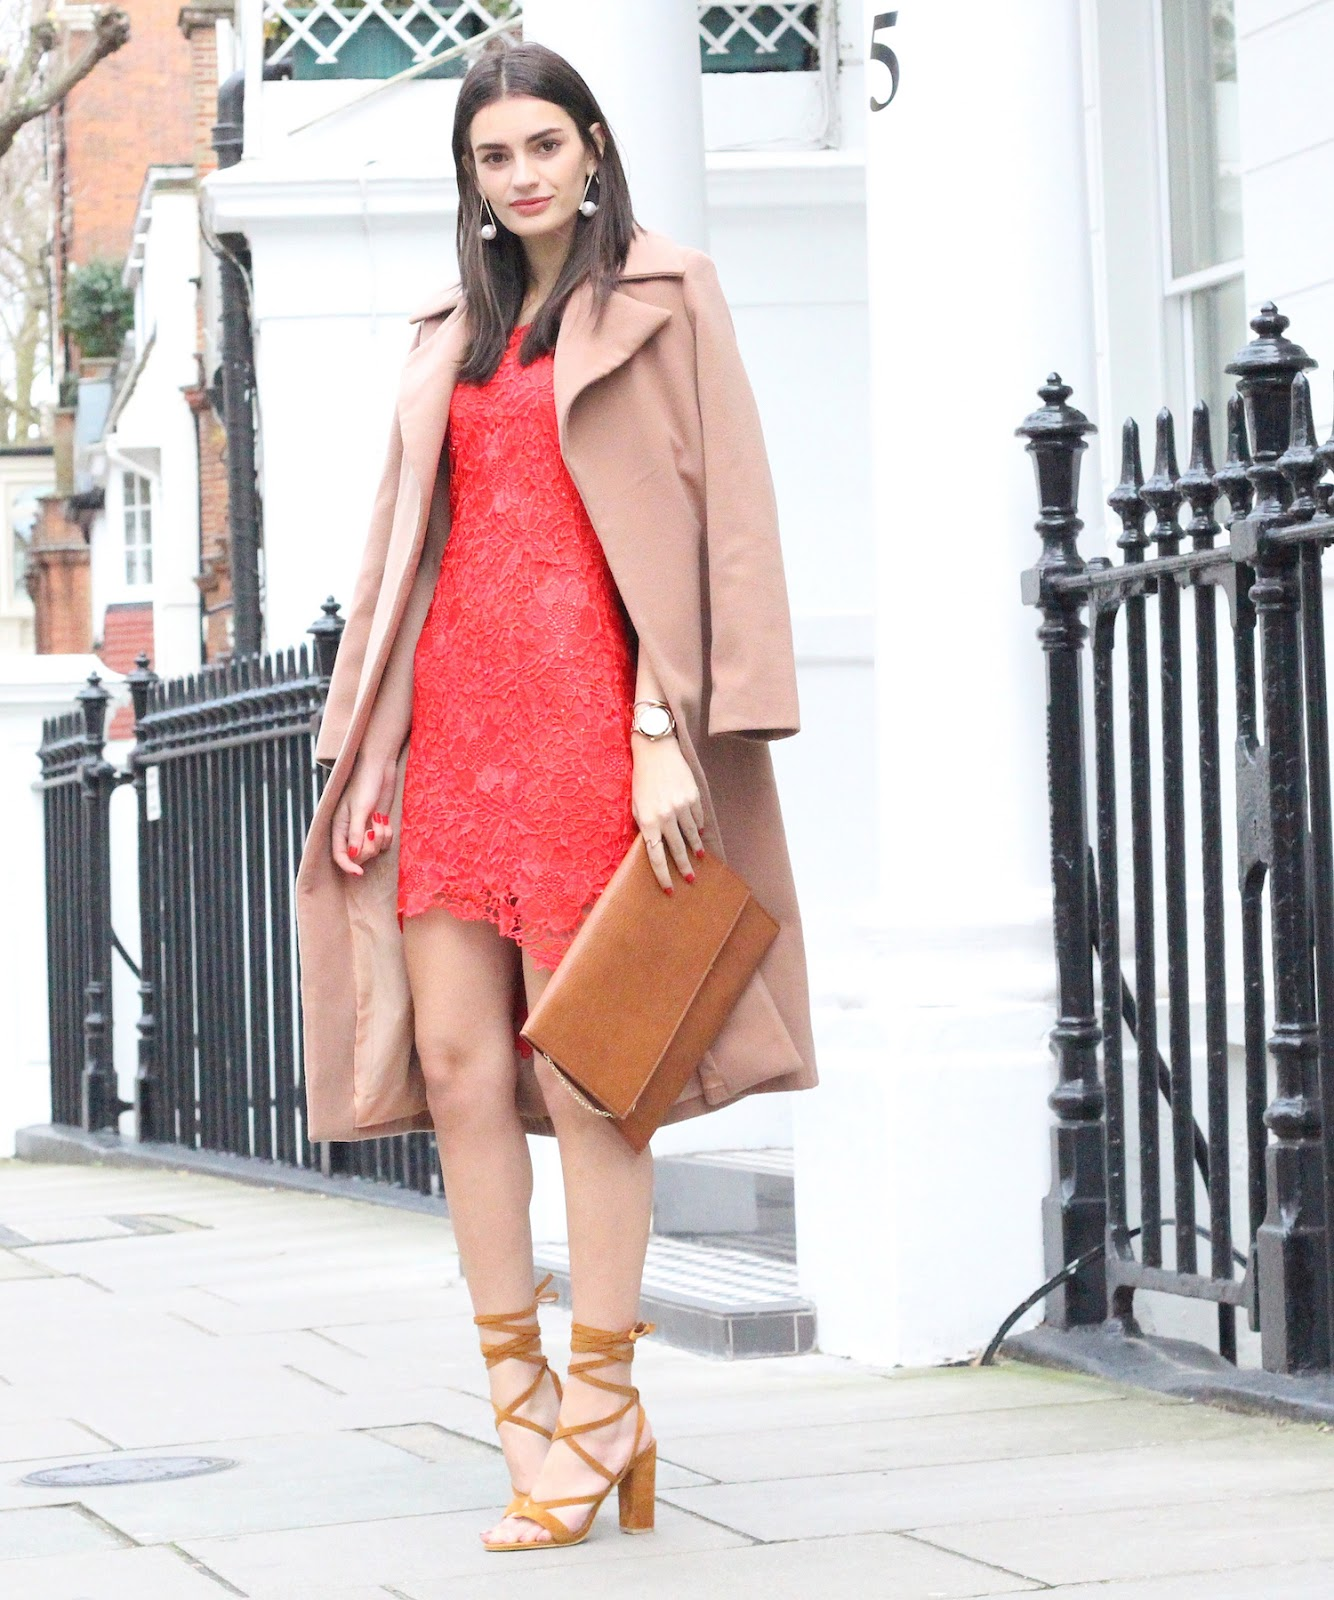 peexo fashion blogger wearing christmas outfit